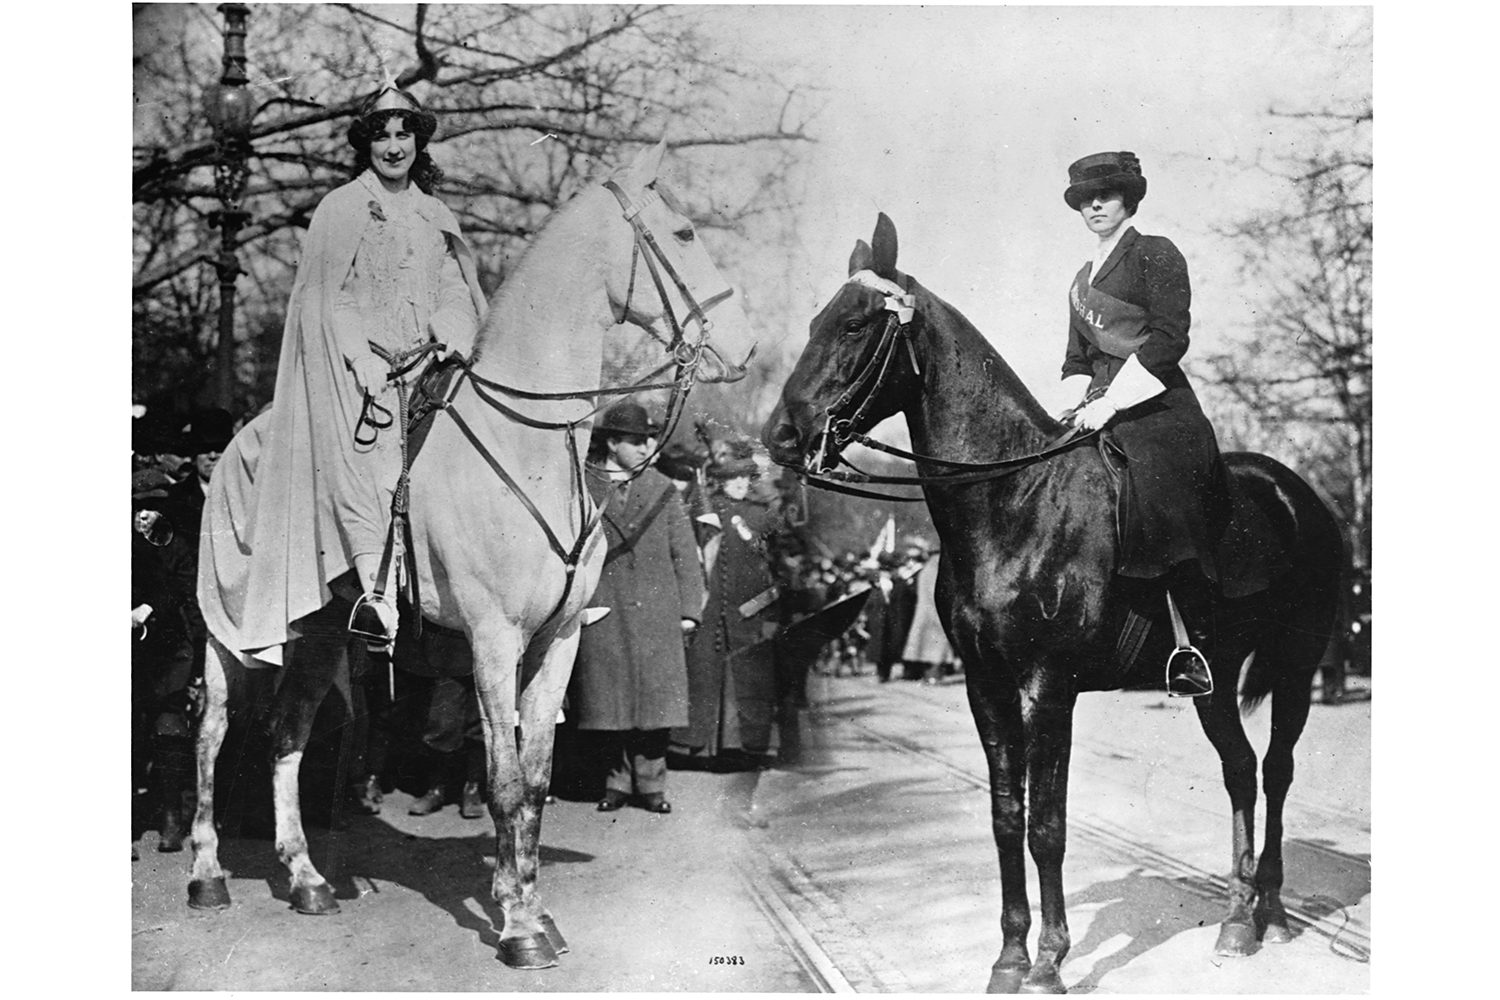 Suffragist Inez Milholland rides on a horse at the Woman Suffrage Procession in 1913